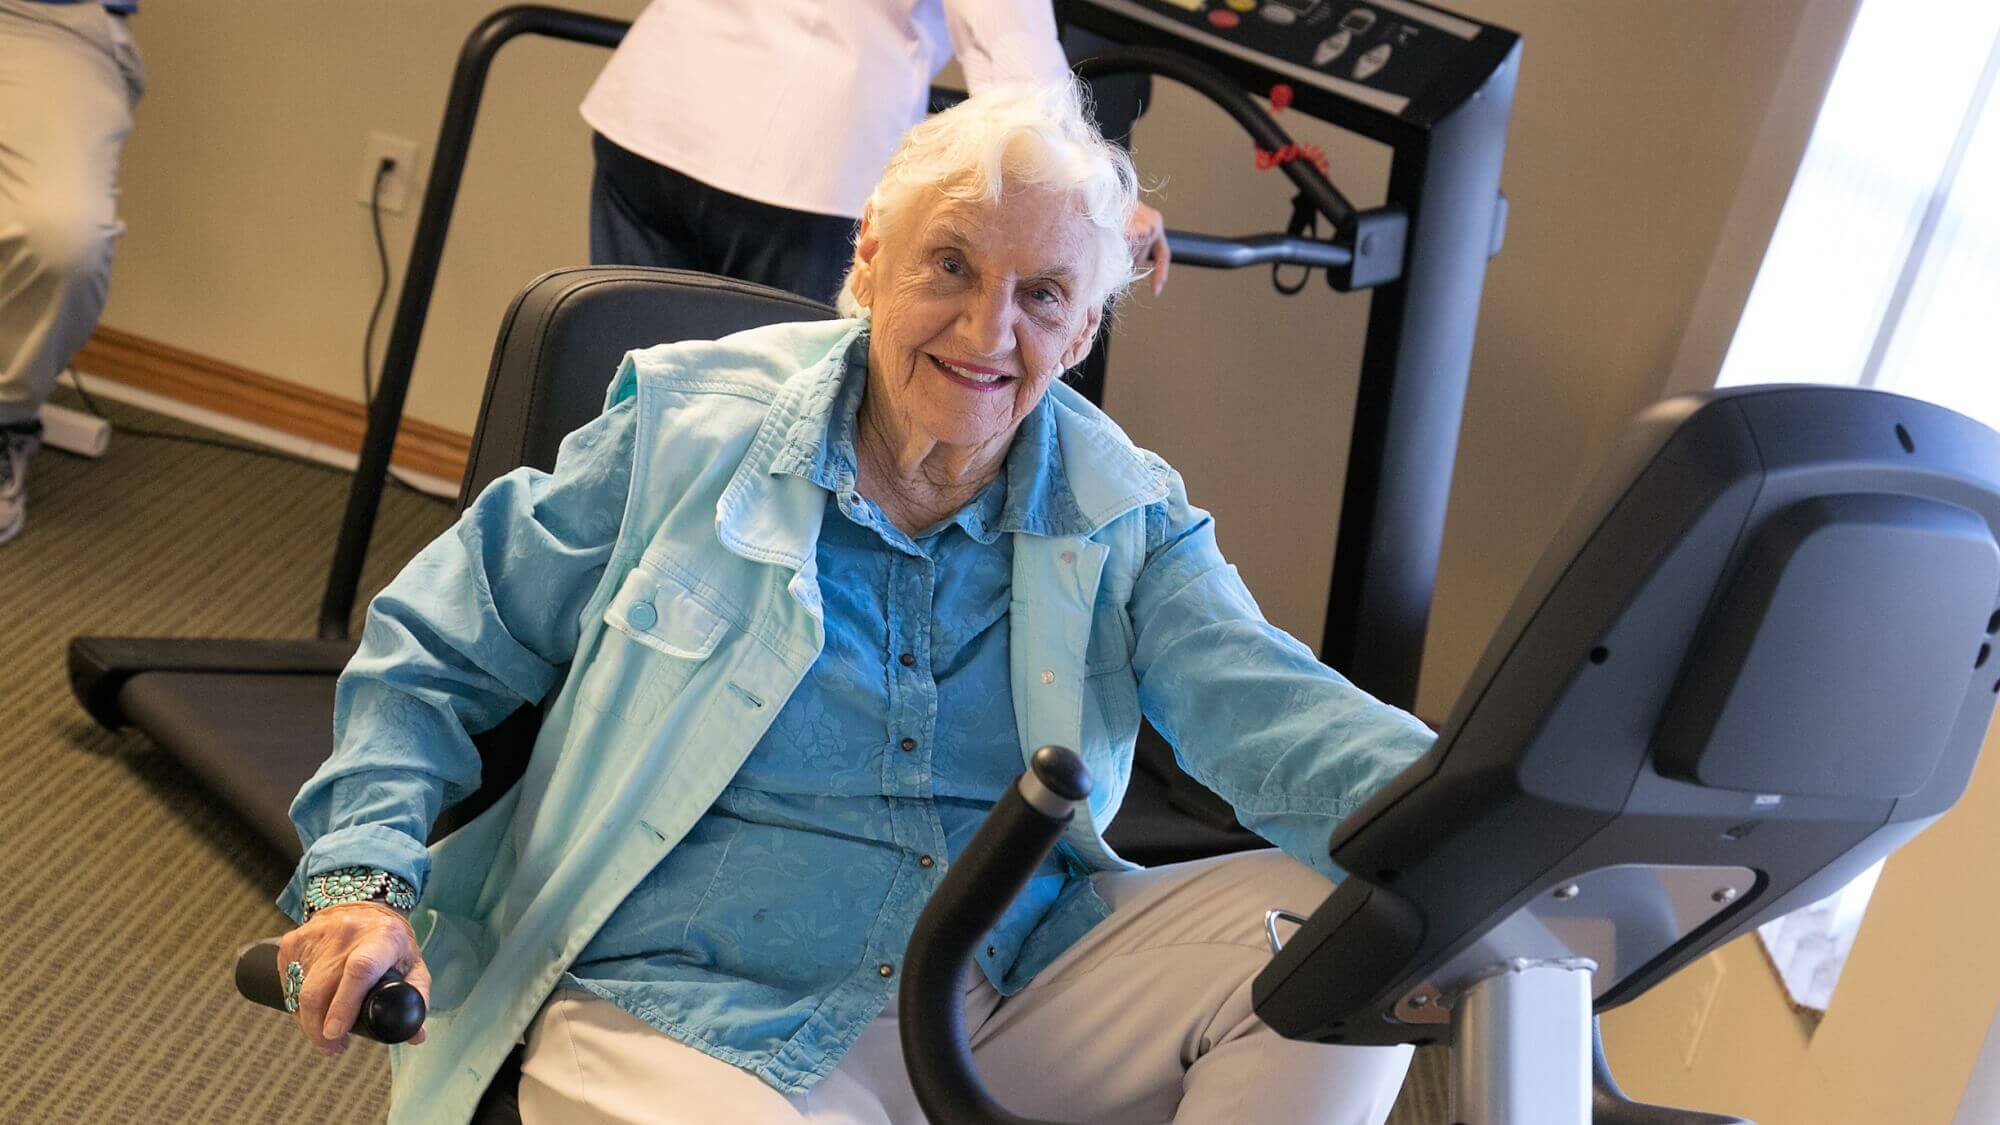 Senior riding a machine bike at the fitness center.